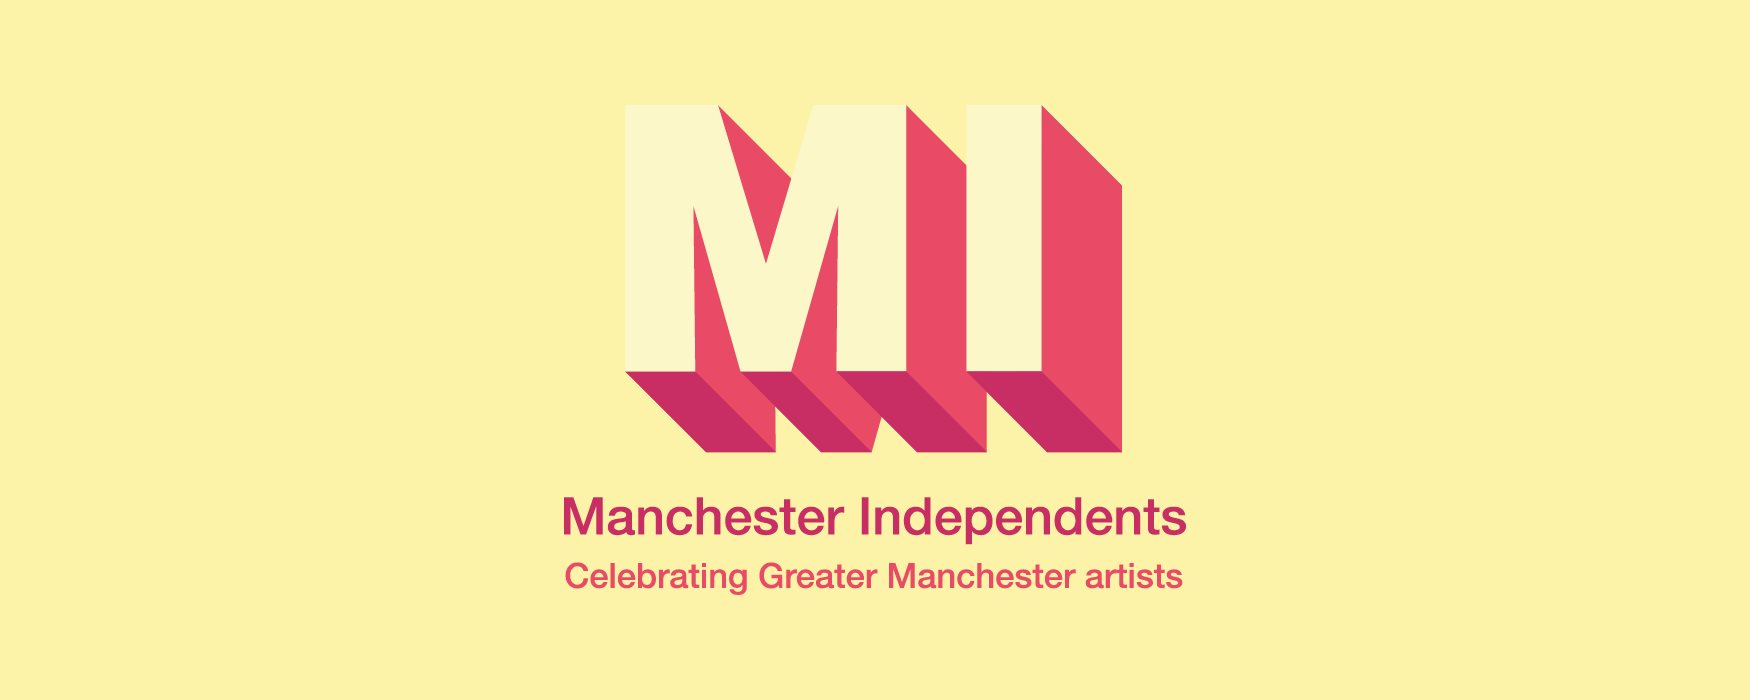 Manchester Independents